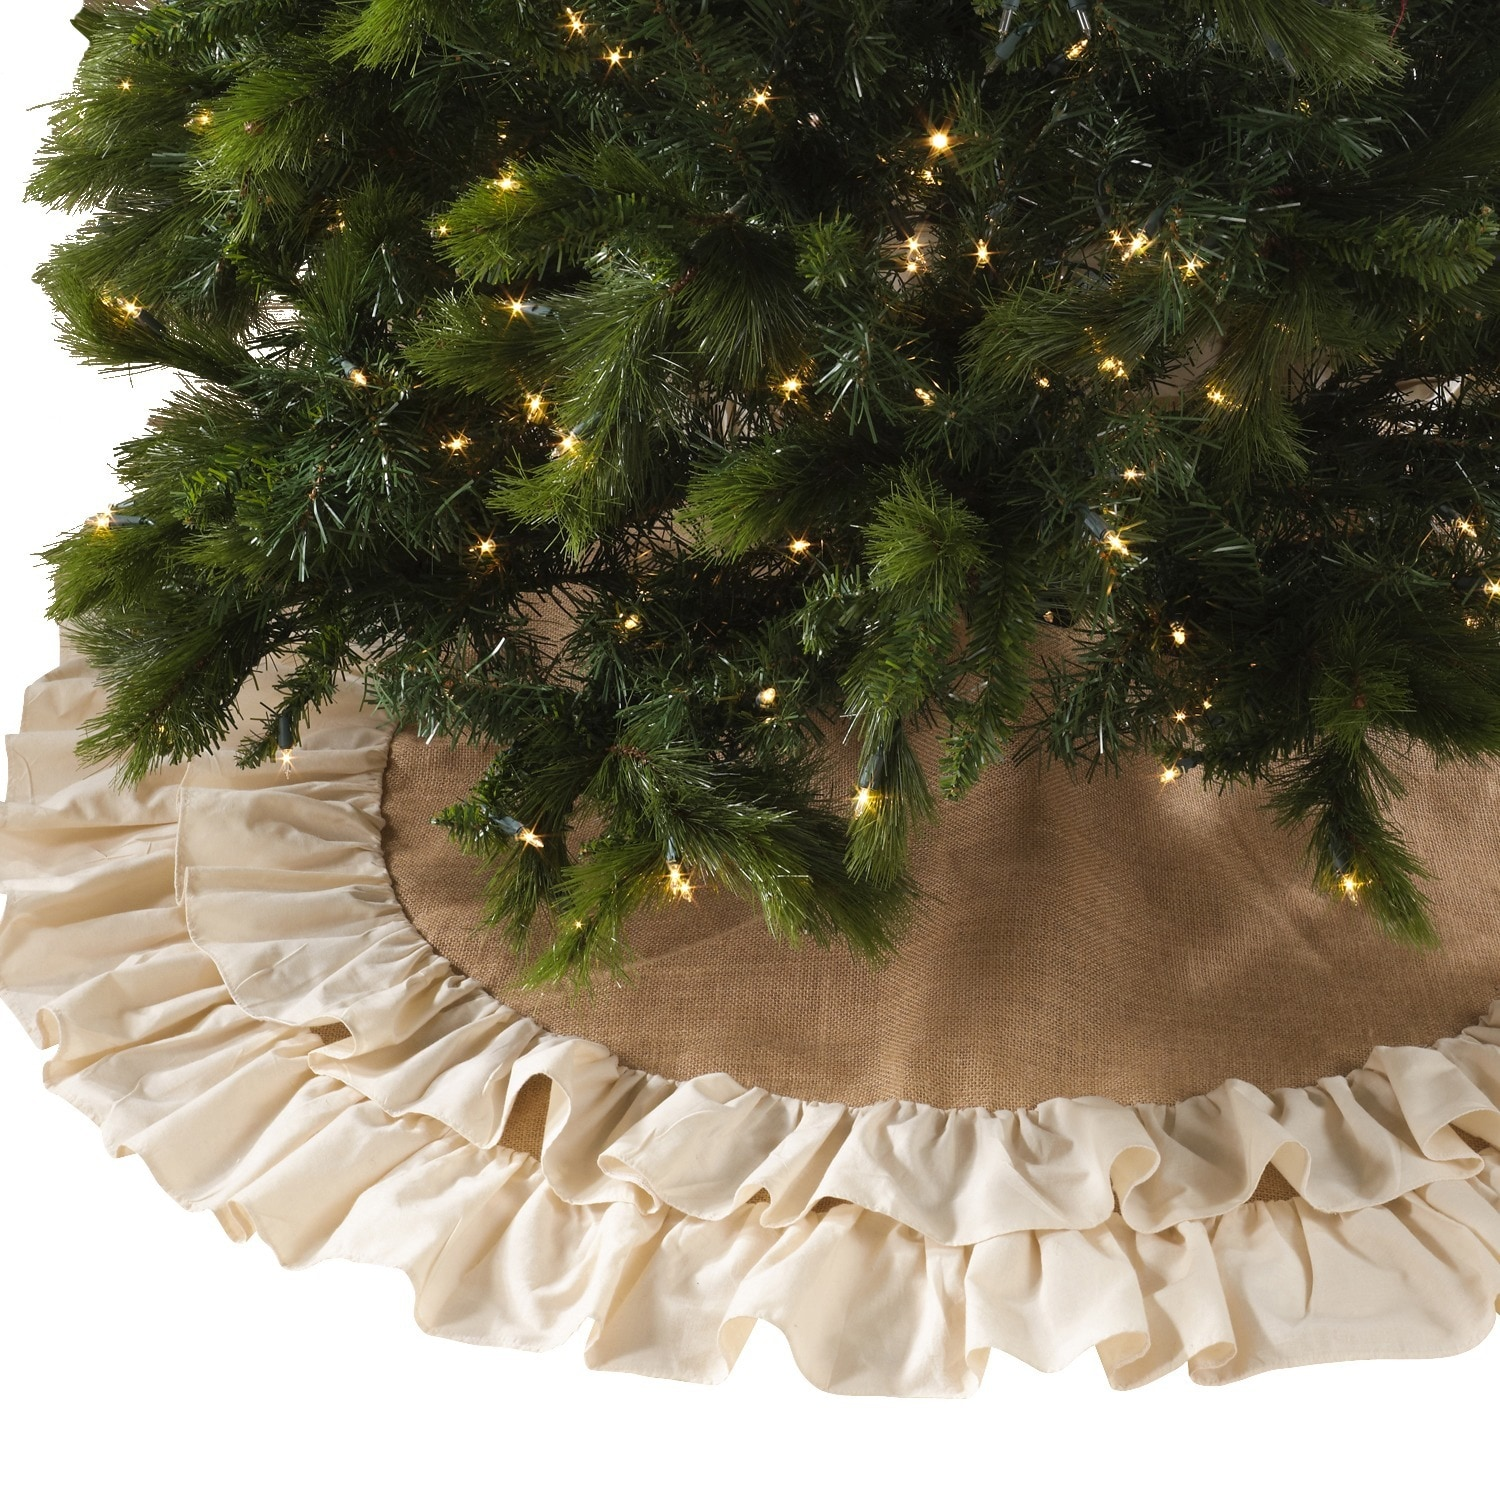 Buy Christmas Seasonal Decor Online at Overstock   Our Best Decorative Accessories Deals